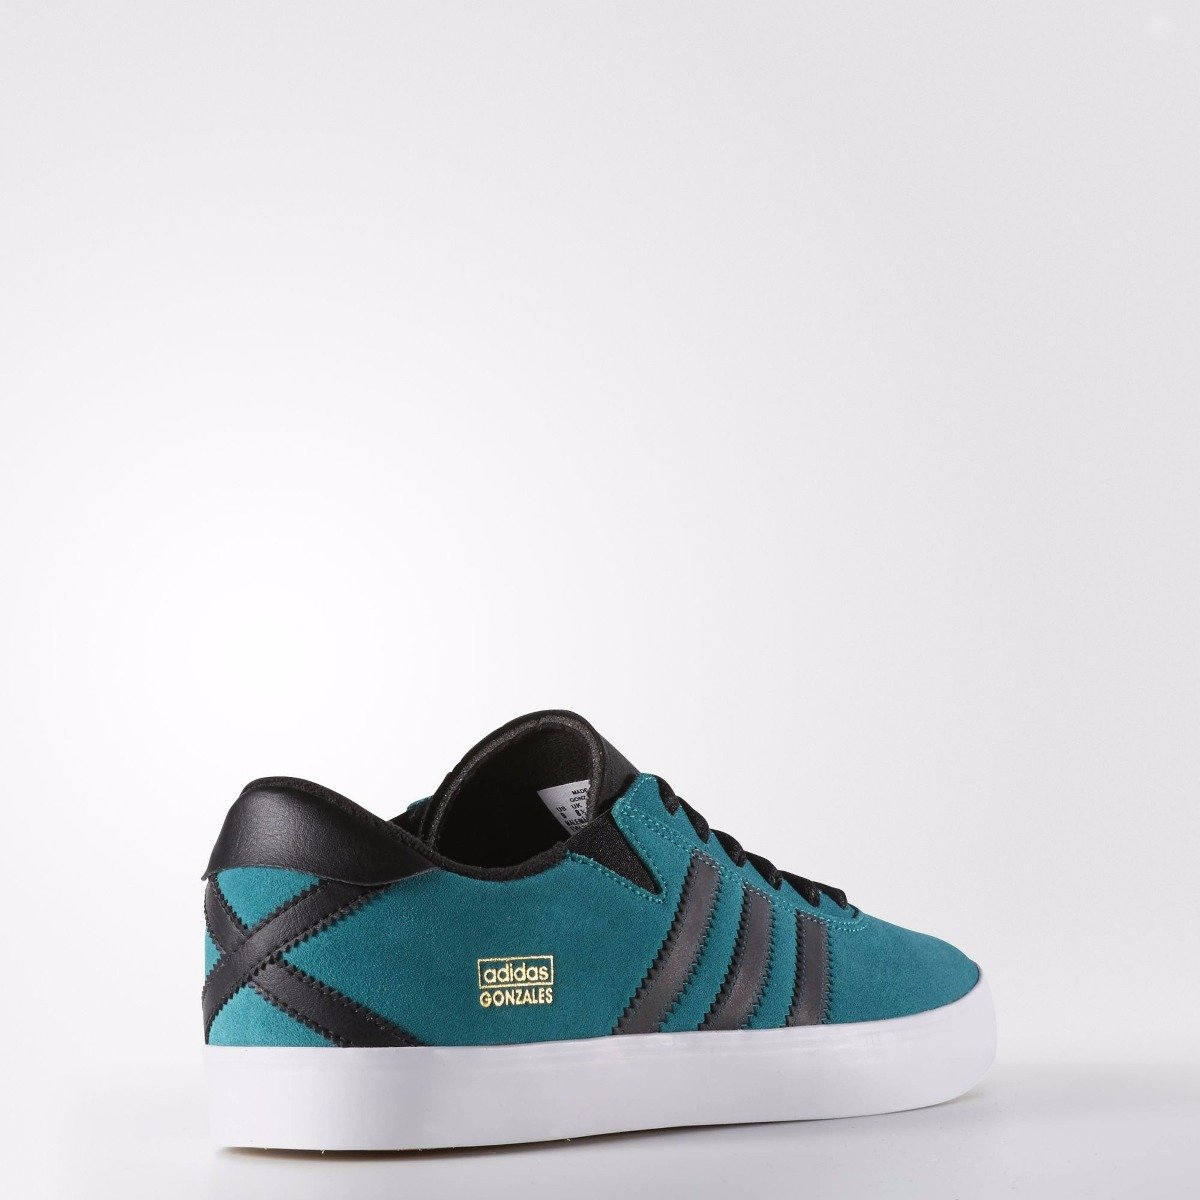 adidas Originals Gonz Pro Men's Skate Shoes (F37404) (EQT